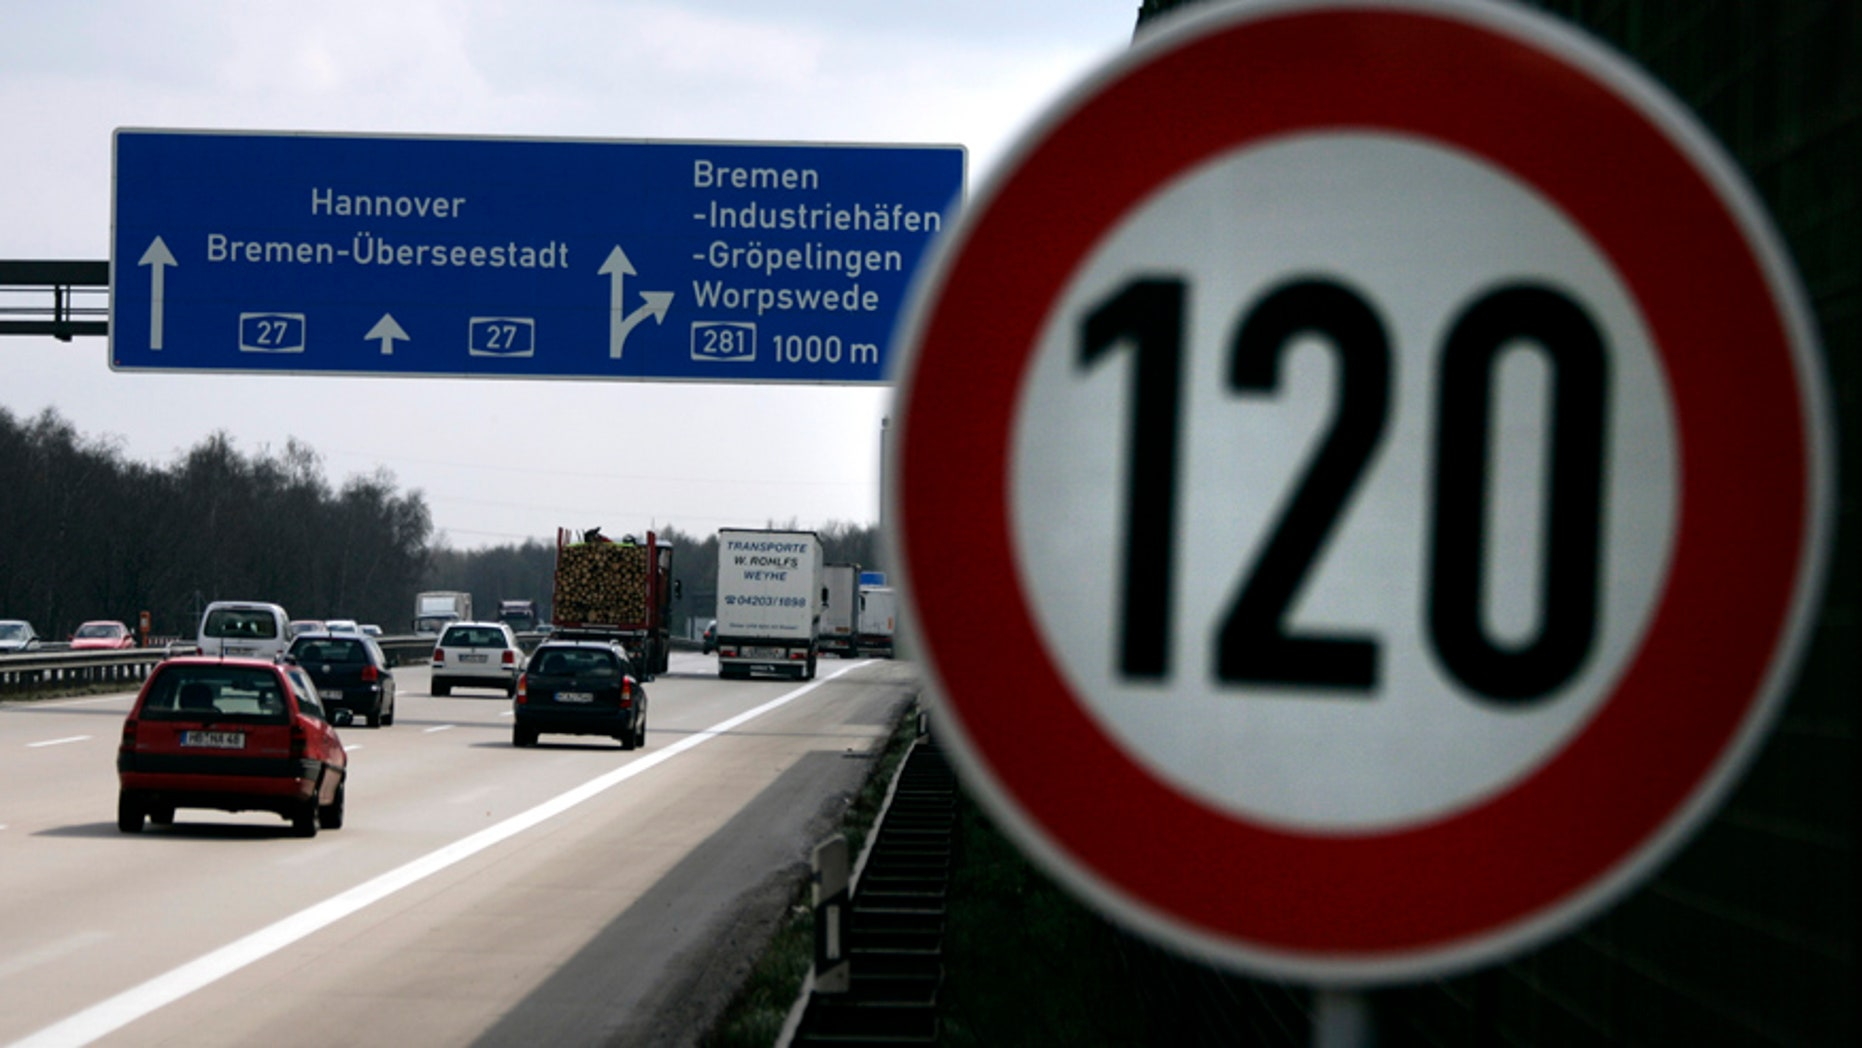 Cars pass a 120 km/h (75 mph) speed limit sign on the A27 Autobahn near the northern German city of Bremen April 10, 2008. The northern city of Bremen became Germany's first state to introduce a speed limit on its motorways on Wednesday, breaking a taboo in a country proud of its fast cars. REUTERS/Morris Mac Matzen  (GERMANY) - RTR1ZBNZ